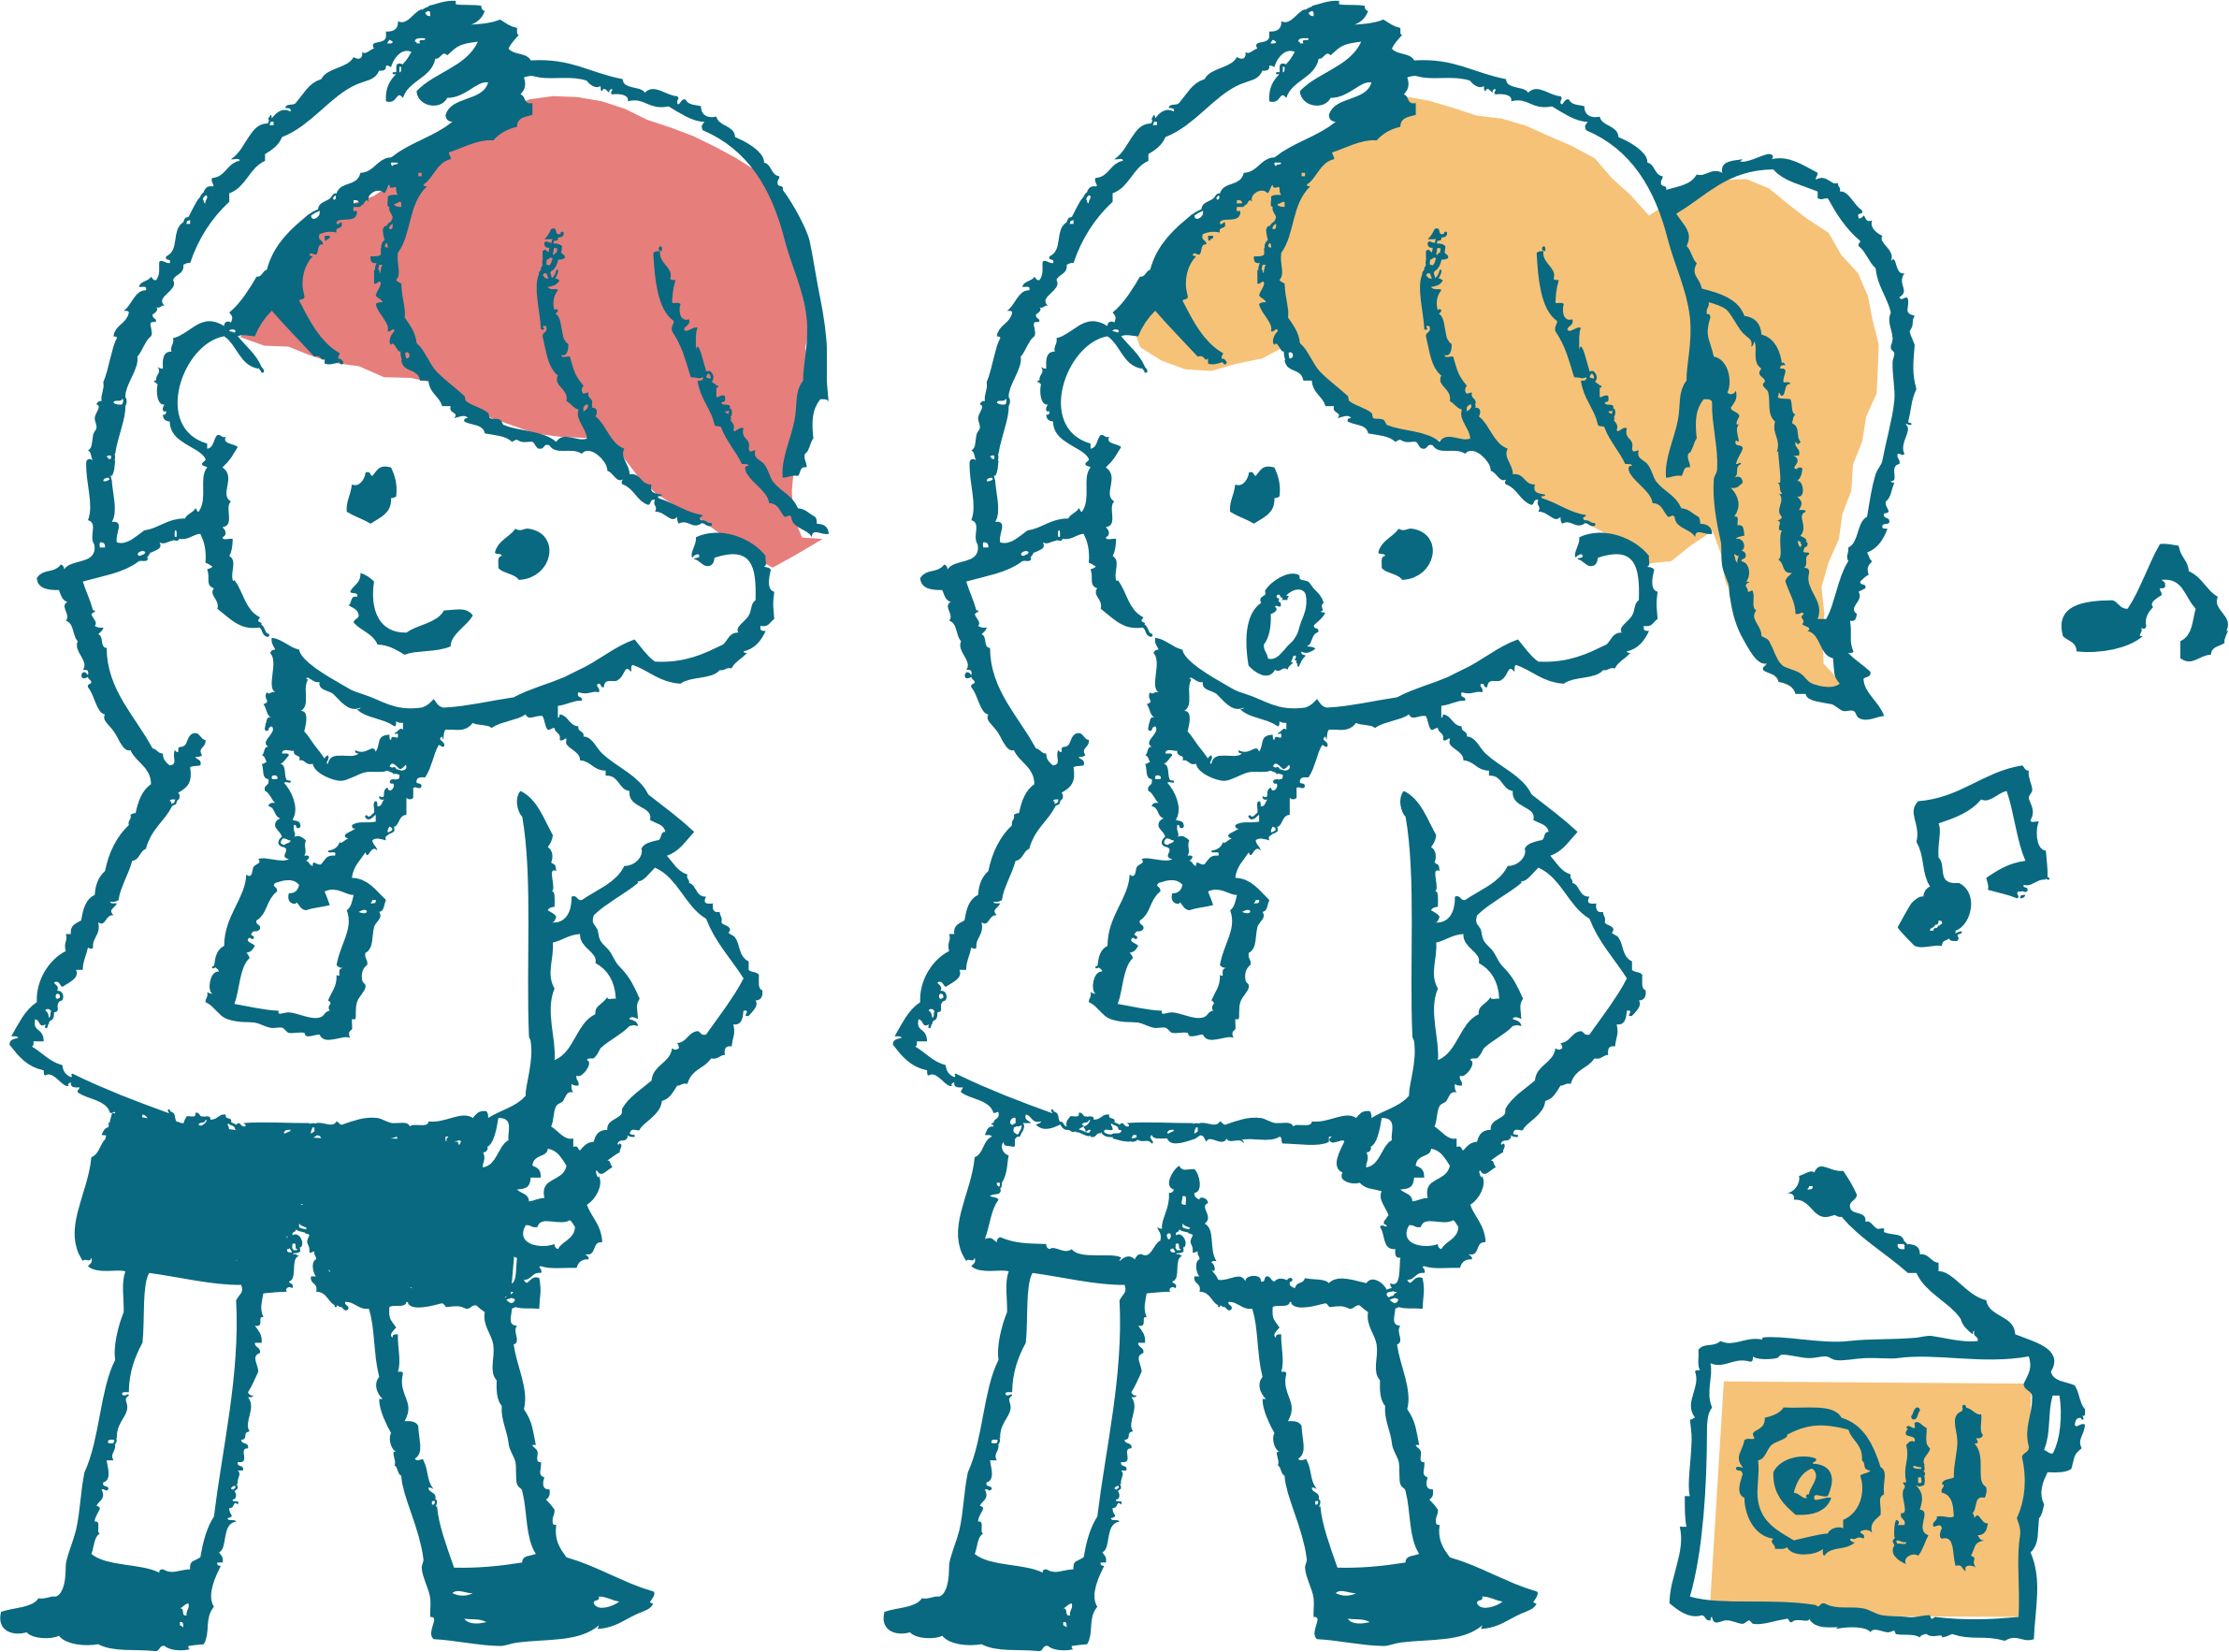 Big image png. Clipart children exercise